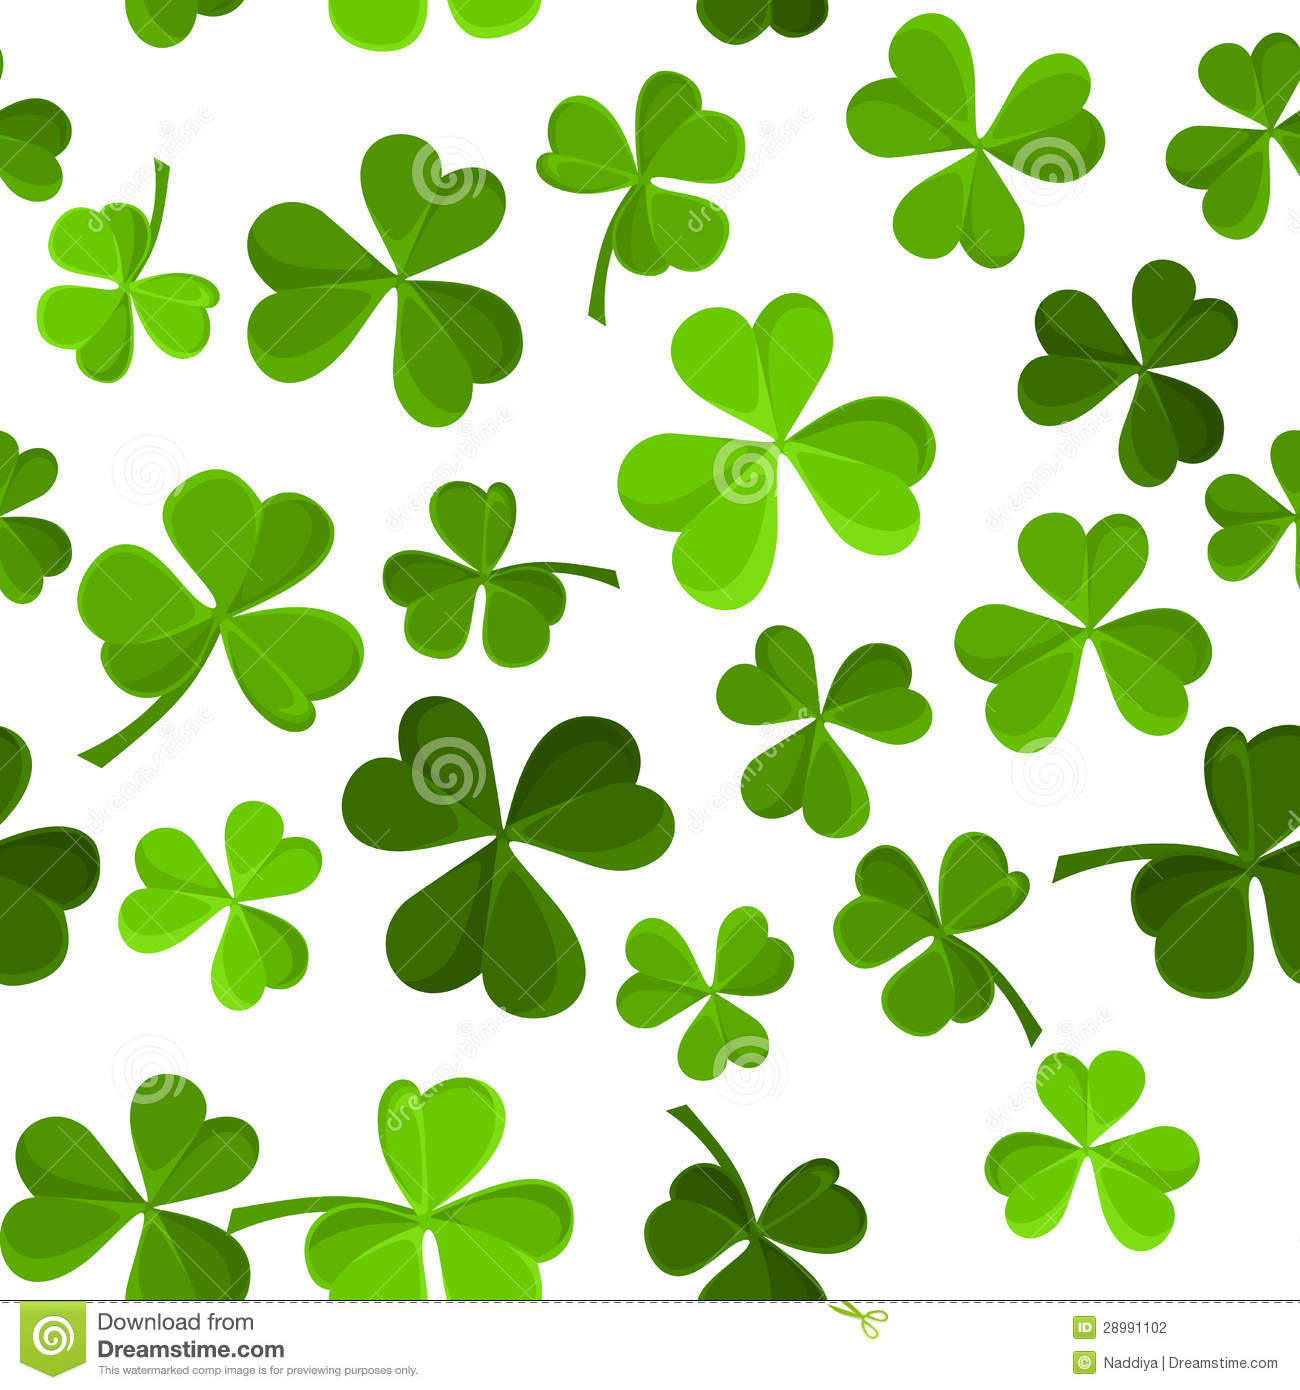 shamrock pattern wallpaper 1366x768 - photo #13